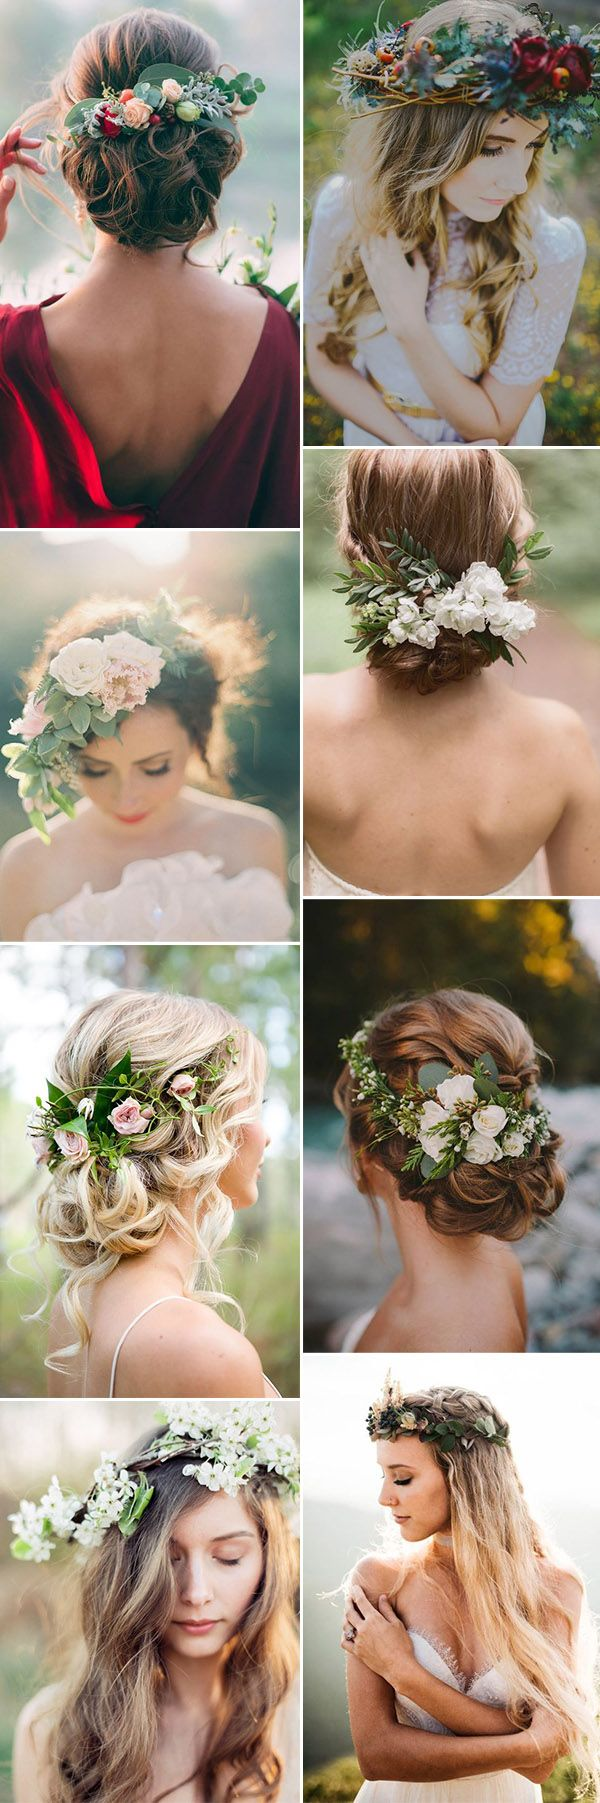 Hottest Wedding Flower Trends for Brides to Follow In in